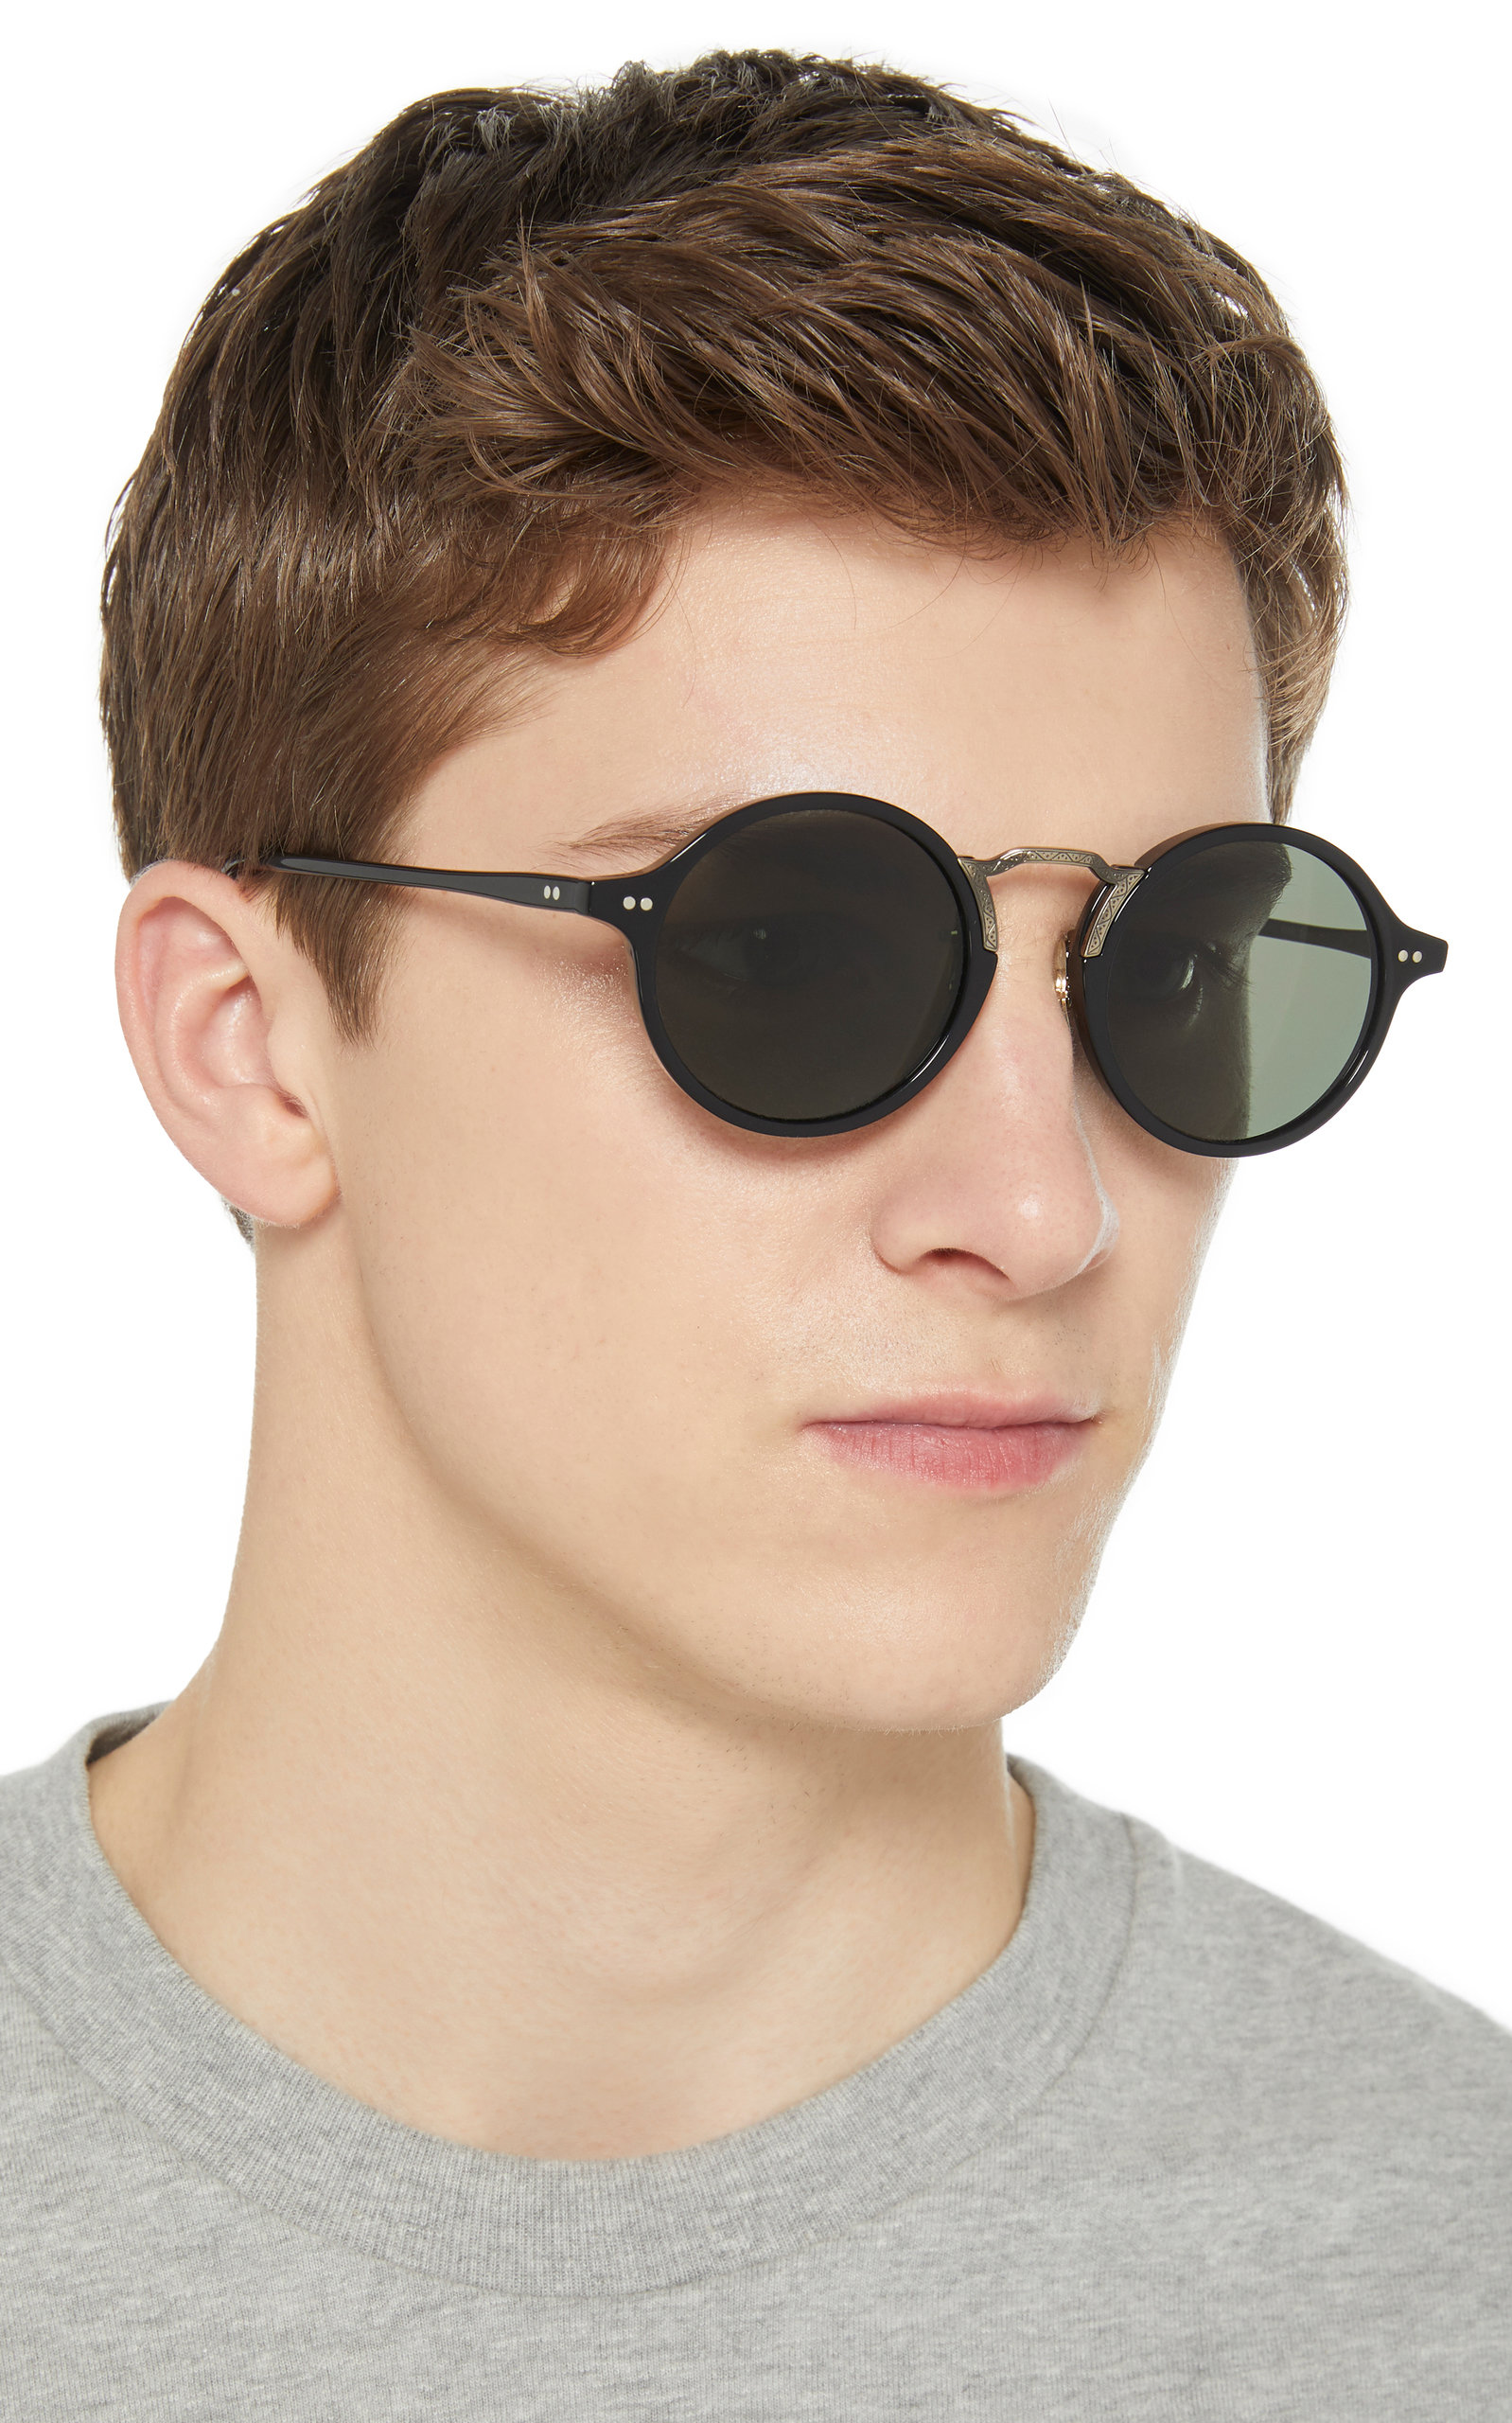 022756739a Oliver PeoplesKosa Round-Frame Acetate Sunglasses. CLOSE. Loading